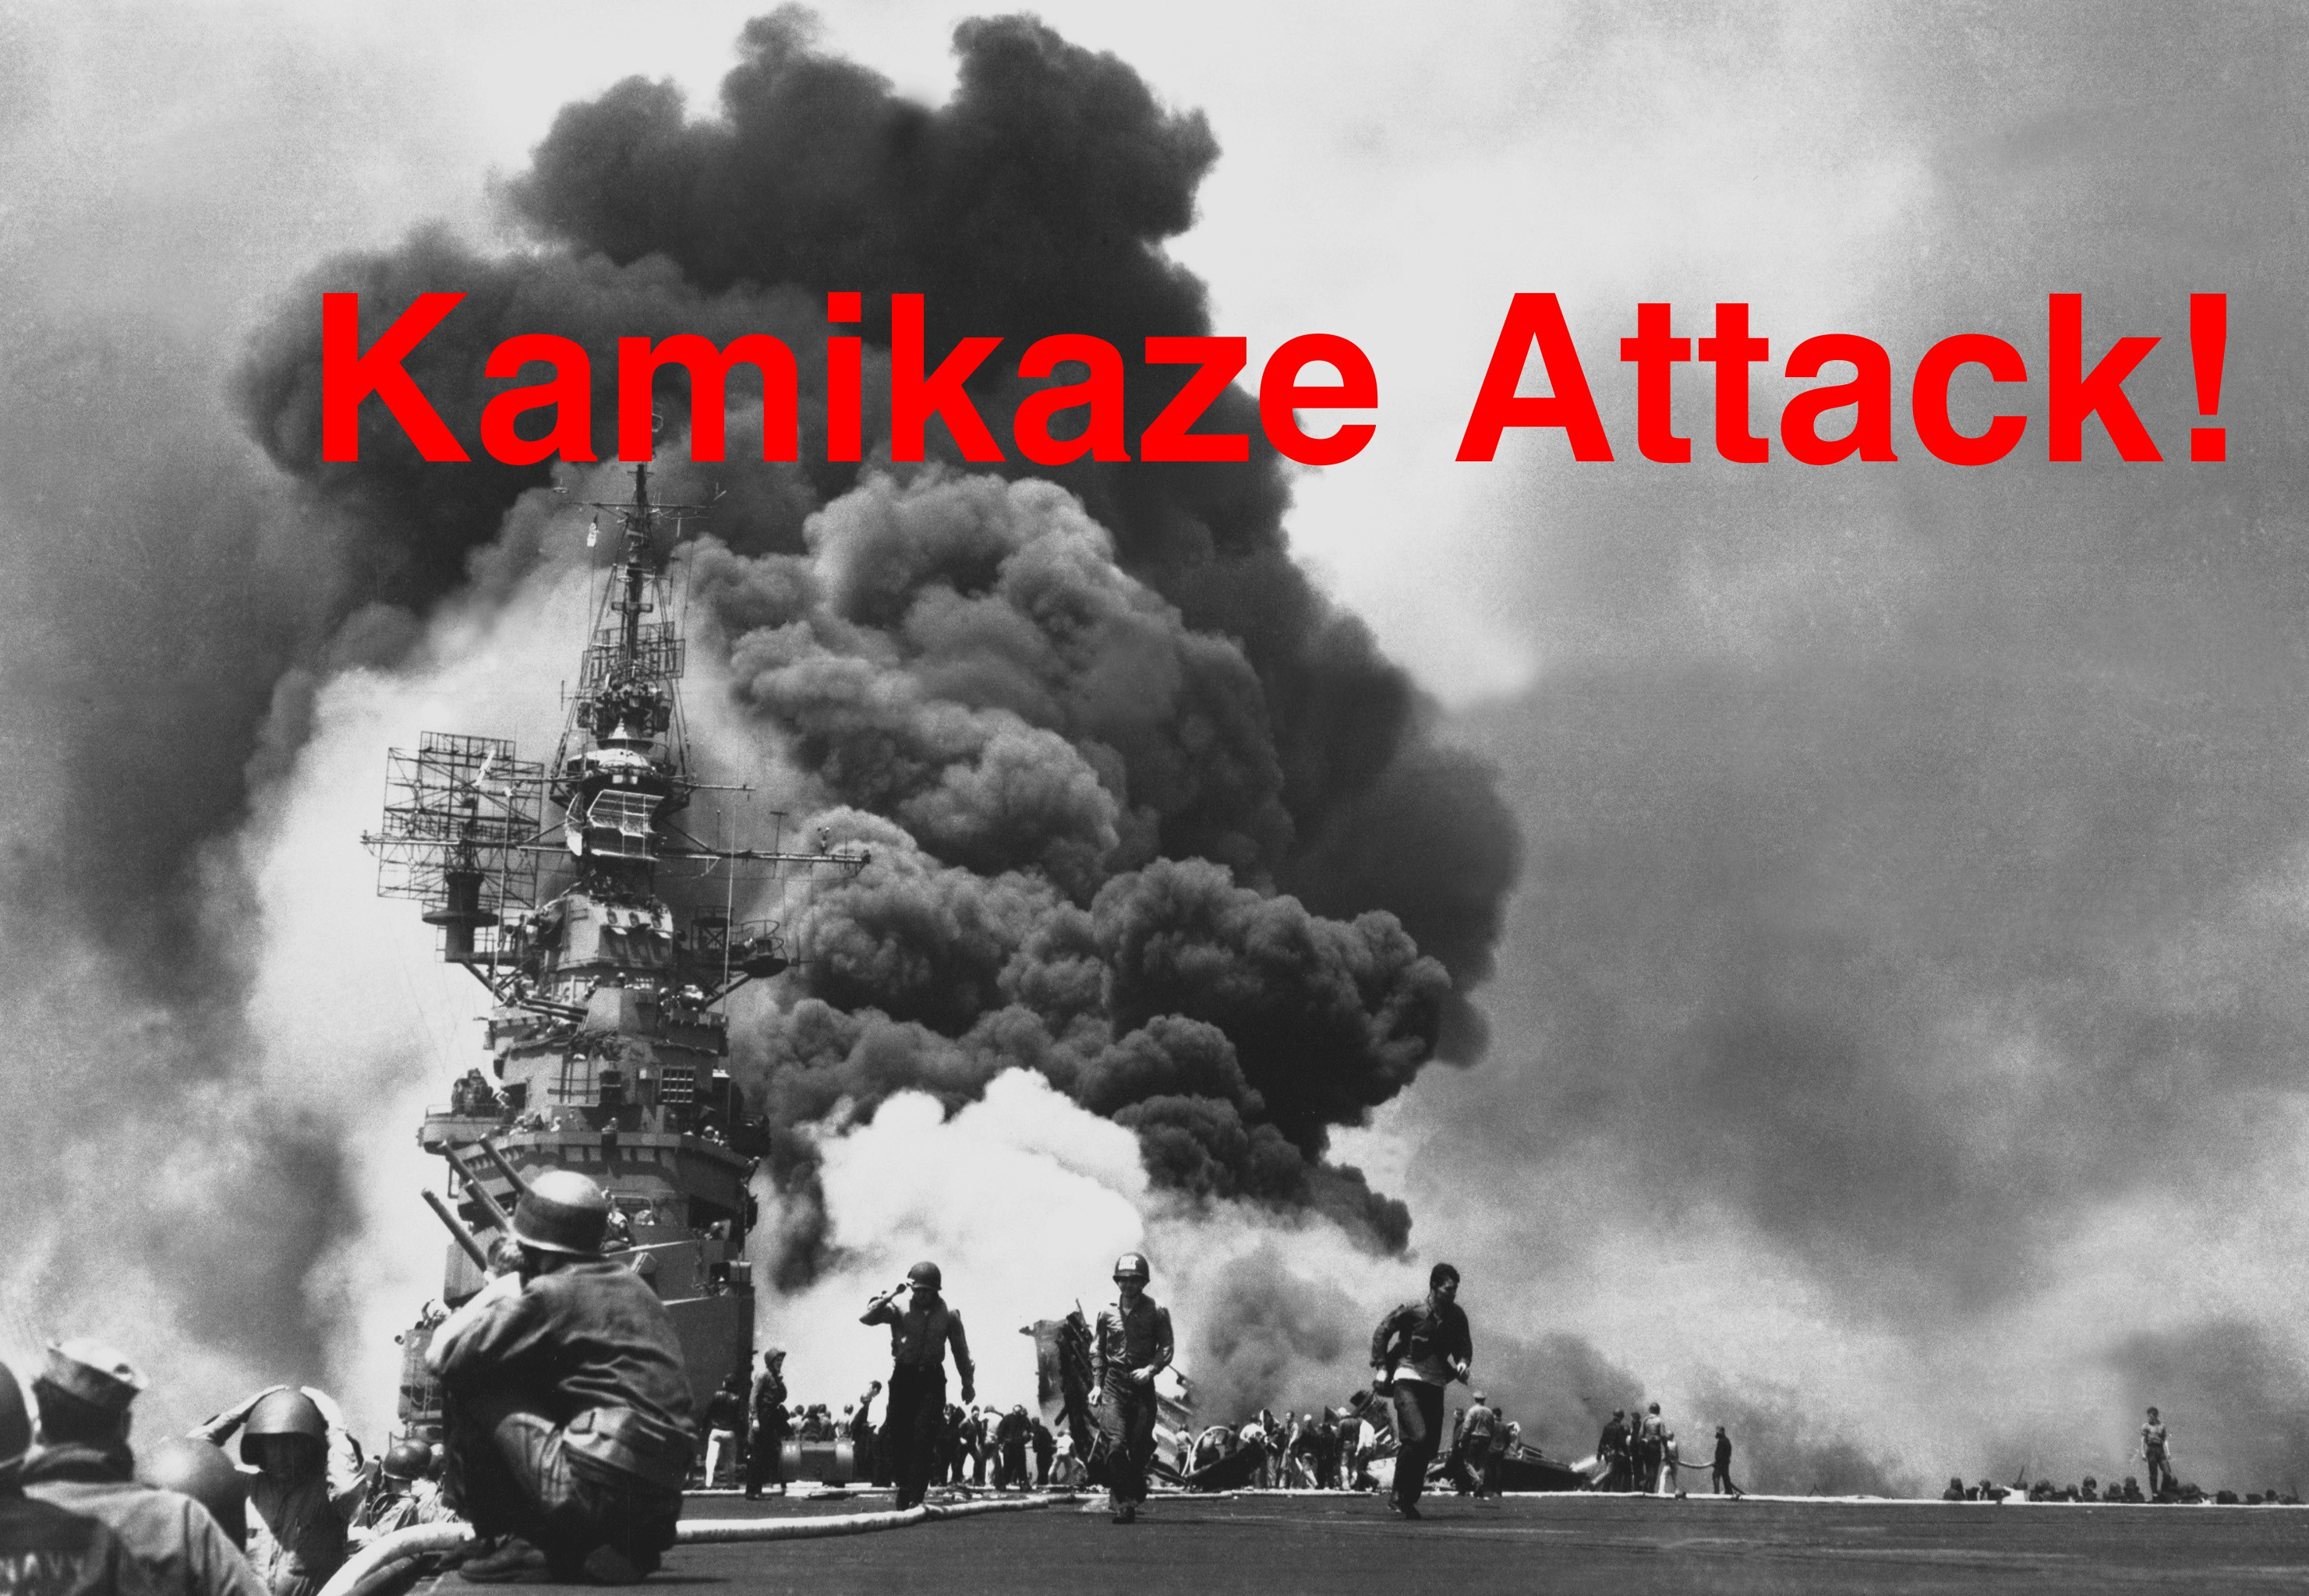 USS_Bunker_Hill_hit_by_two_Kamikazes.jpg